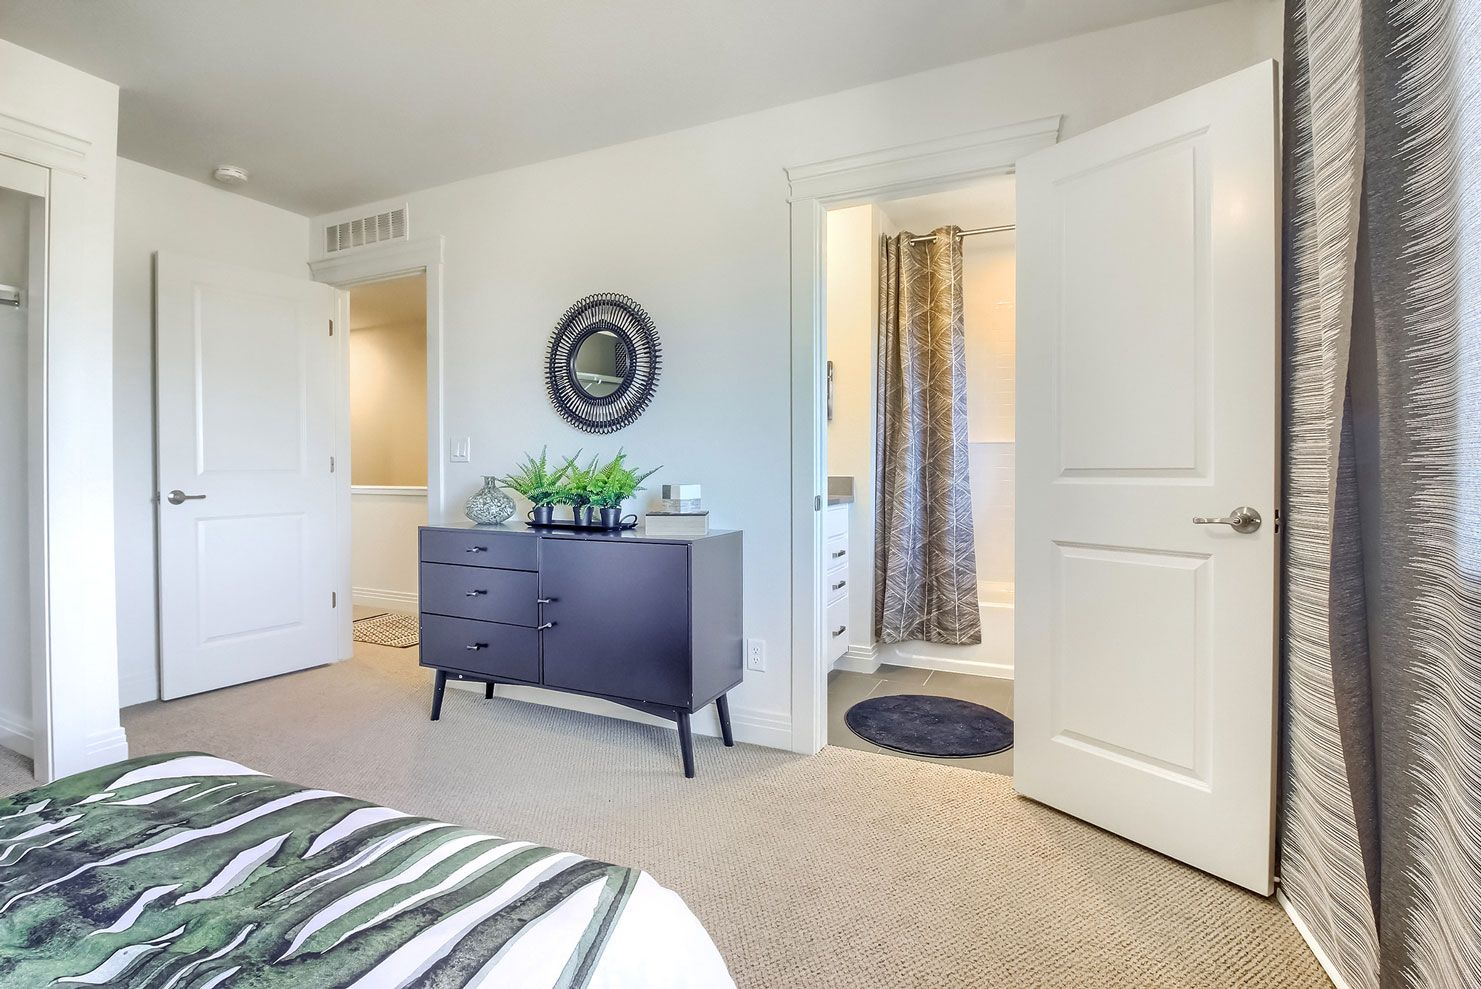 Bedroom featured in the Uptown By Thrive Home Builders in Denver, CO